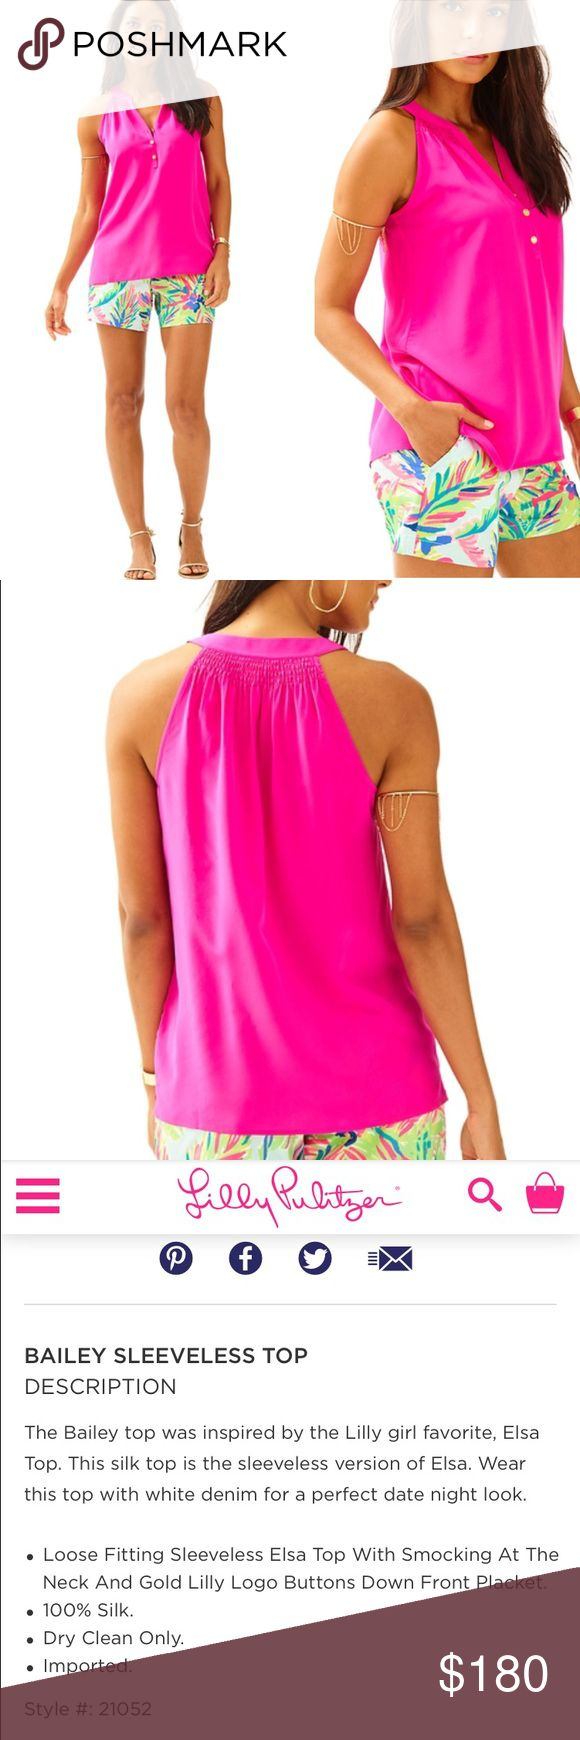 XL 100% Silk Bailey Top Magenta Lilly Pulitzer Bailey Top - Magenta. Size XL. OUT OF STOCK. Model pics and product info from Lilly website, actual item pictured 100% silk! Not 100% sure if I want to sell or keep so price is very firm Lilly Pulitzer Tops